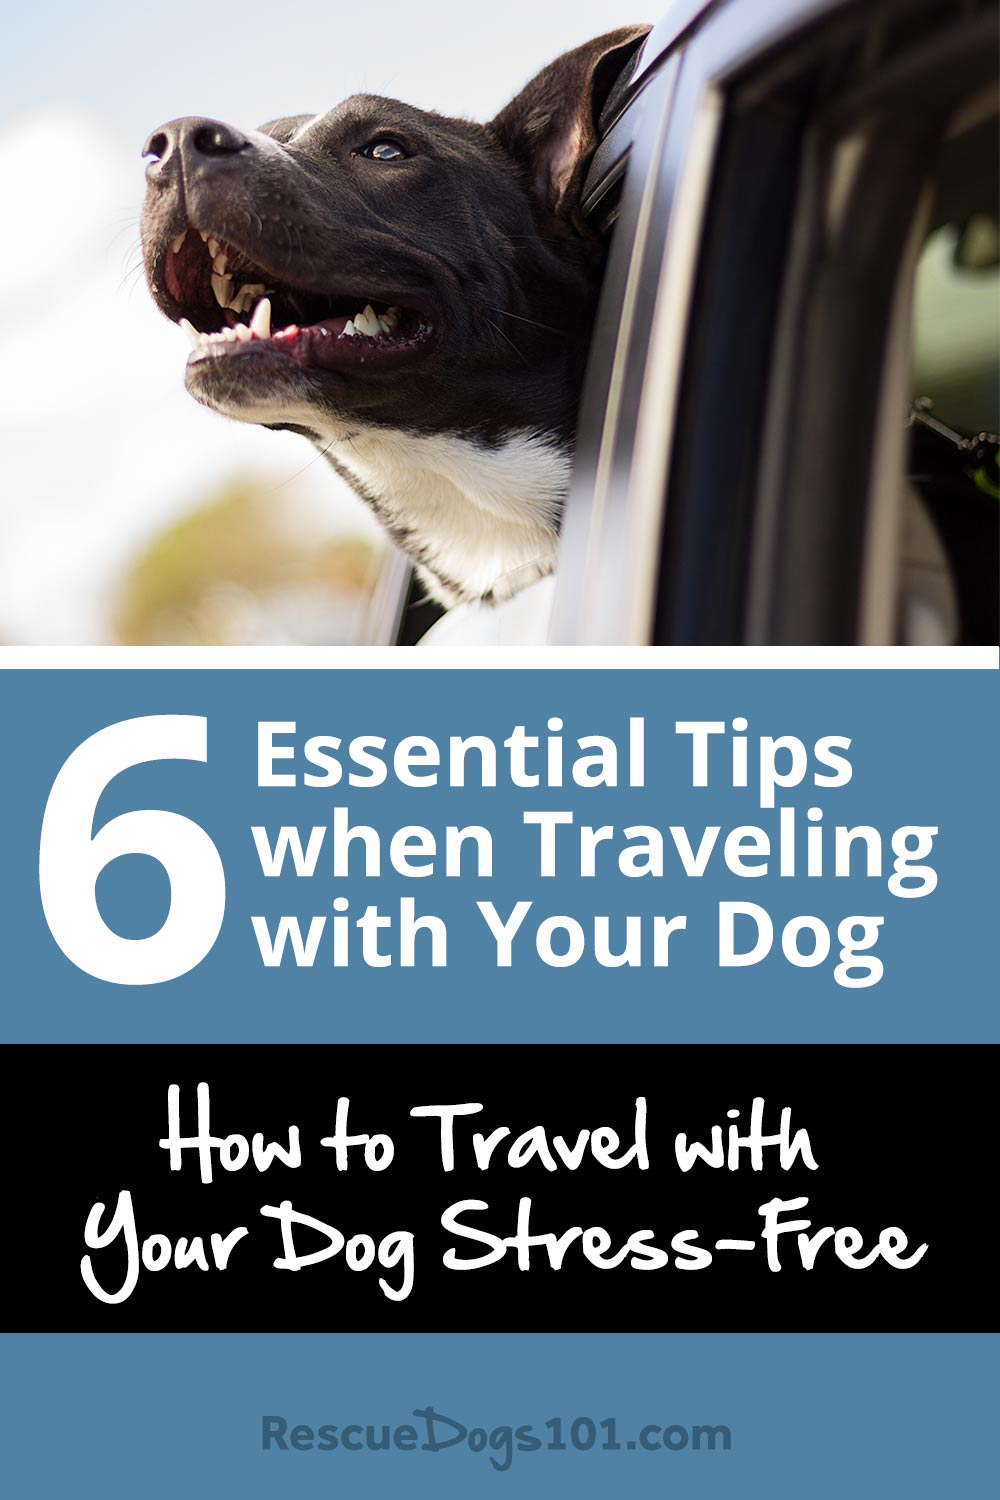 6 Essential Tips when Traveling with Your Dog